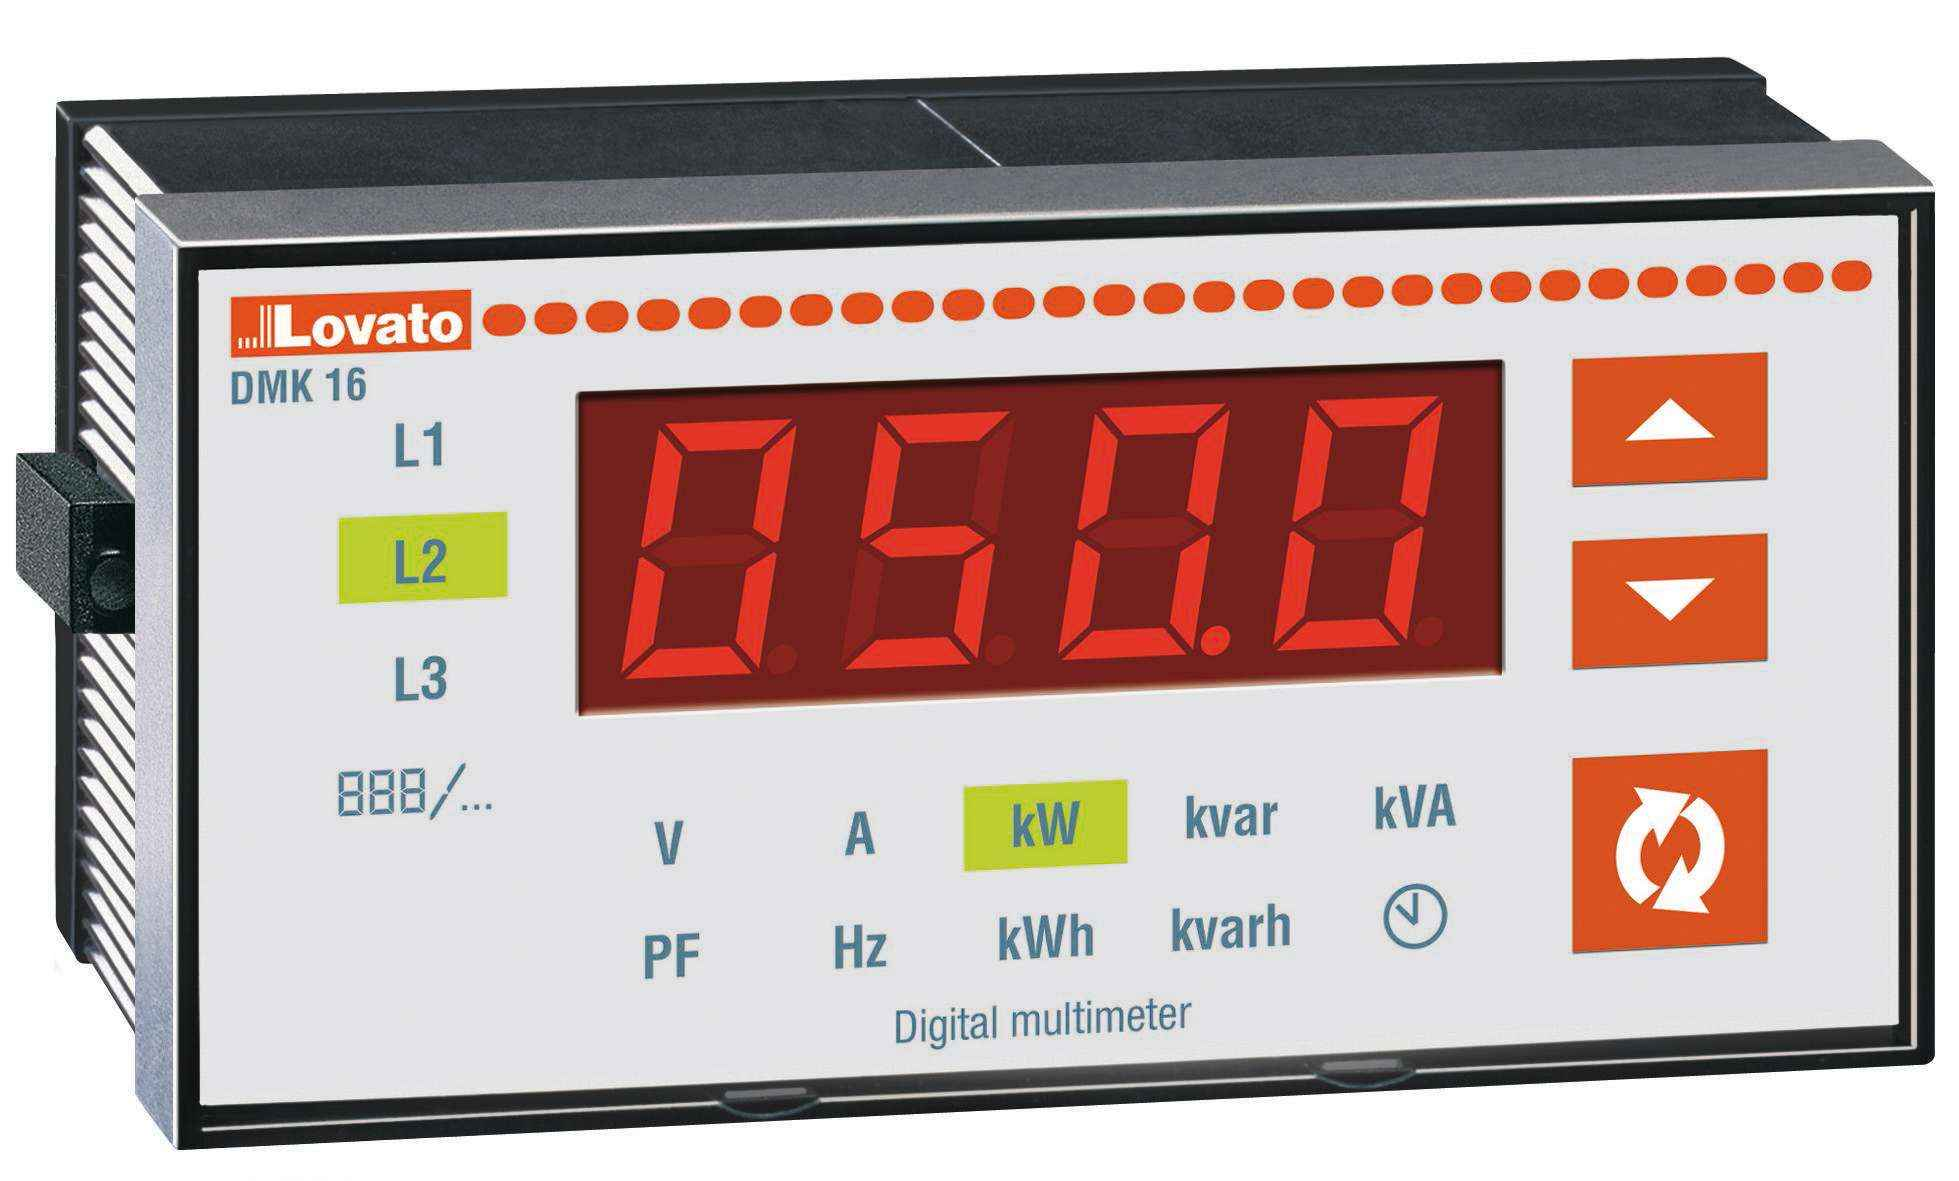 DMK 16 Multimeters